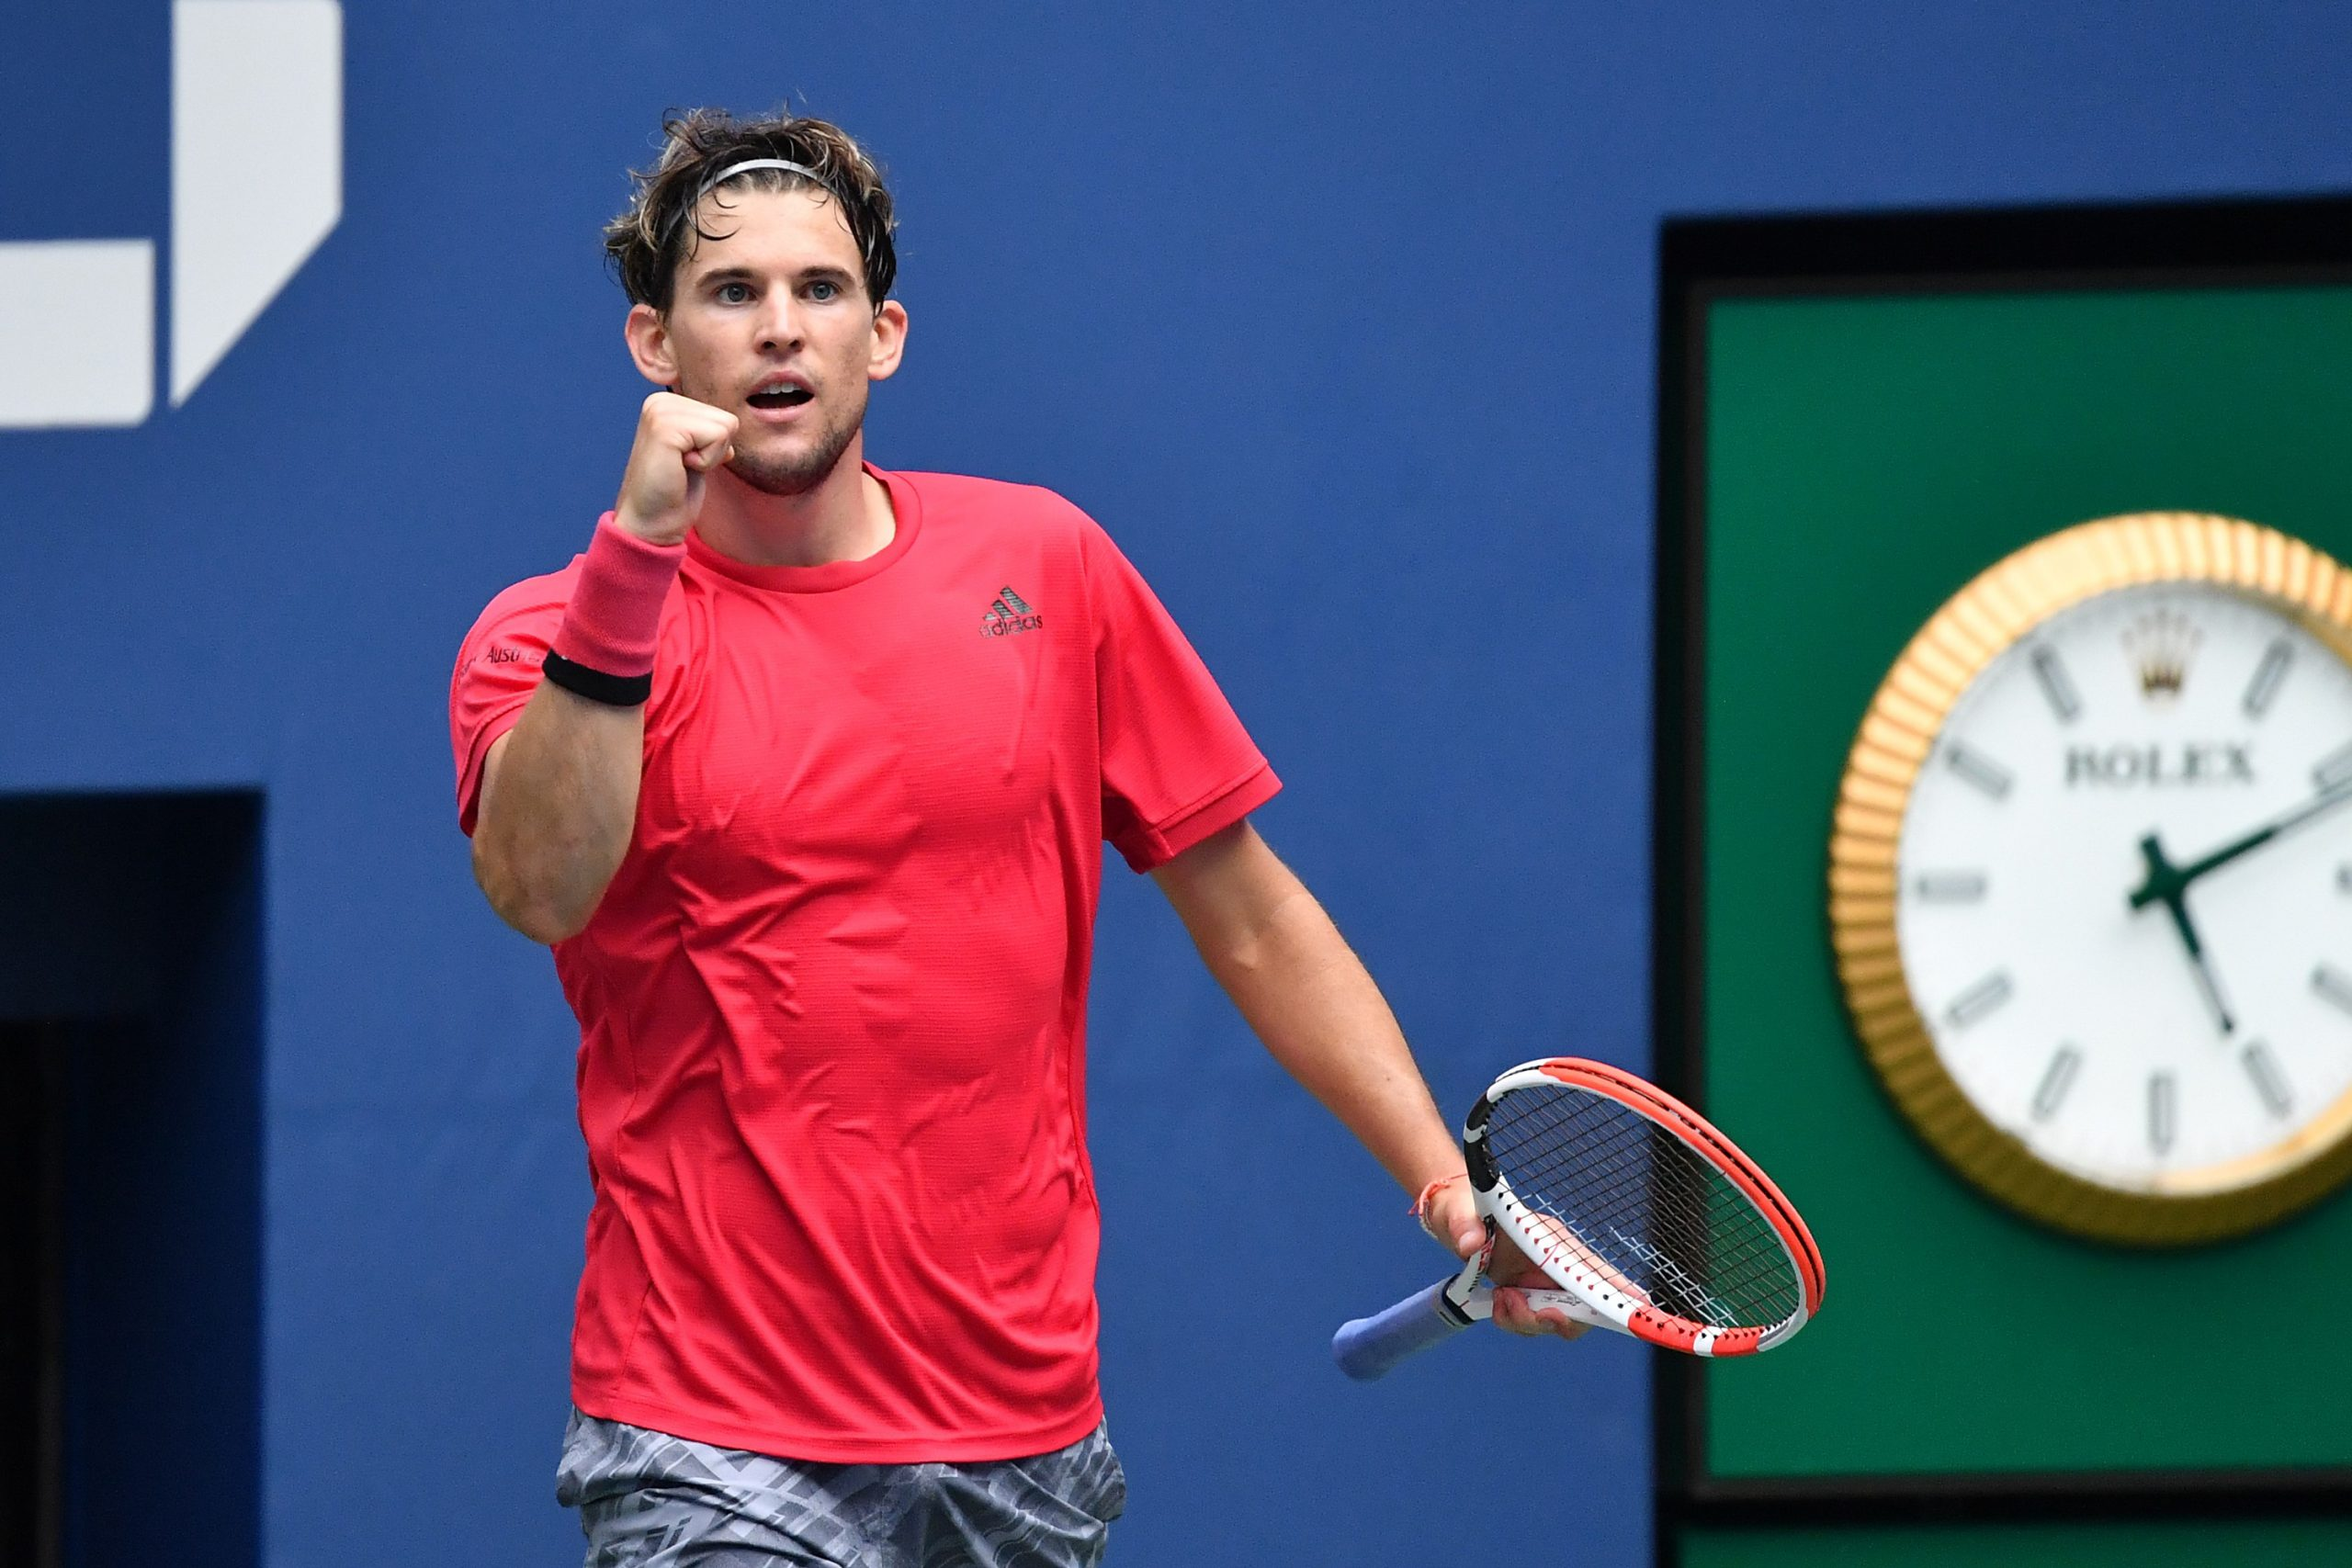 Austria's Dominic Thiem finally claimed his first Grand Slam title with a stunning comeback to beat Germany's Alexander Zverev 2-6 4-6 6-4 6-3 7-6(6) in the United States Open final on Sunday. The 27-year-old world number three, beaten in his first three Grand Slam finals, started as favourite in this brutal and nerve-jangling match. But […]